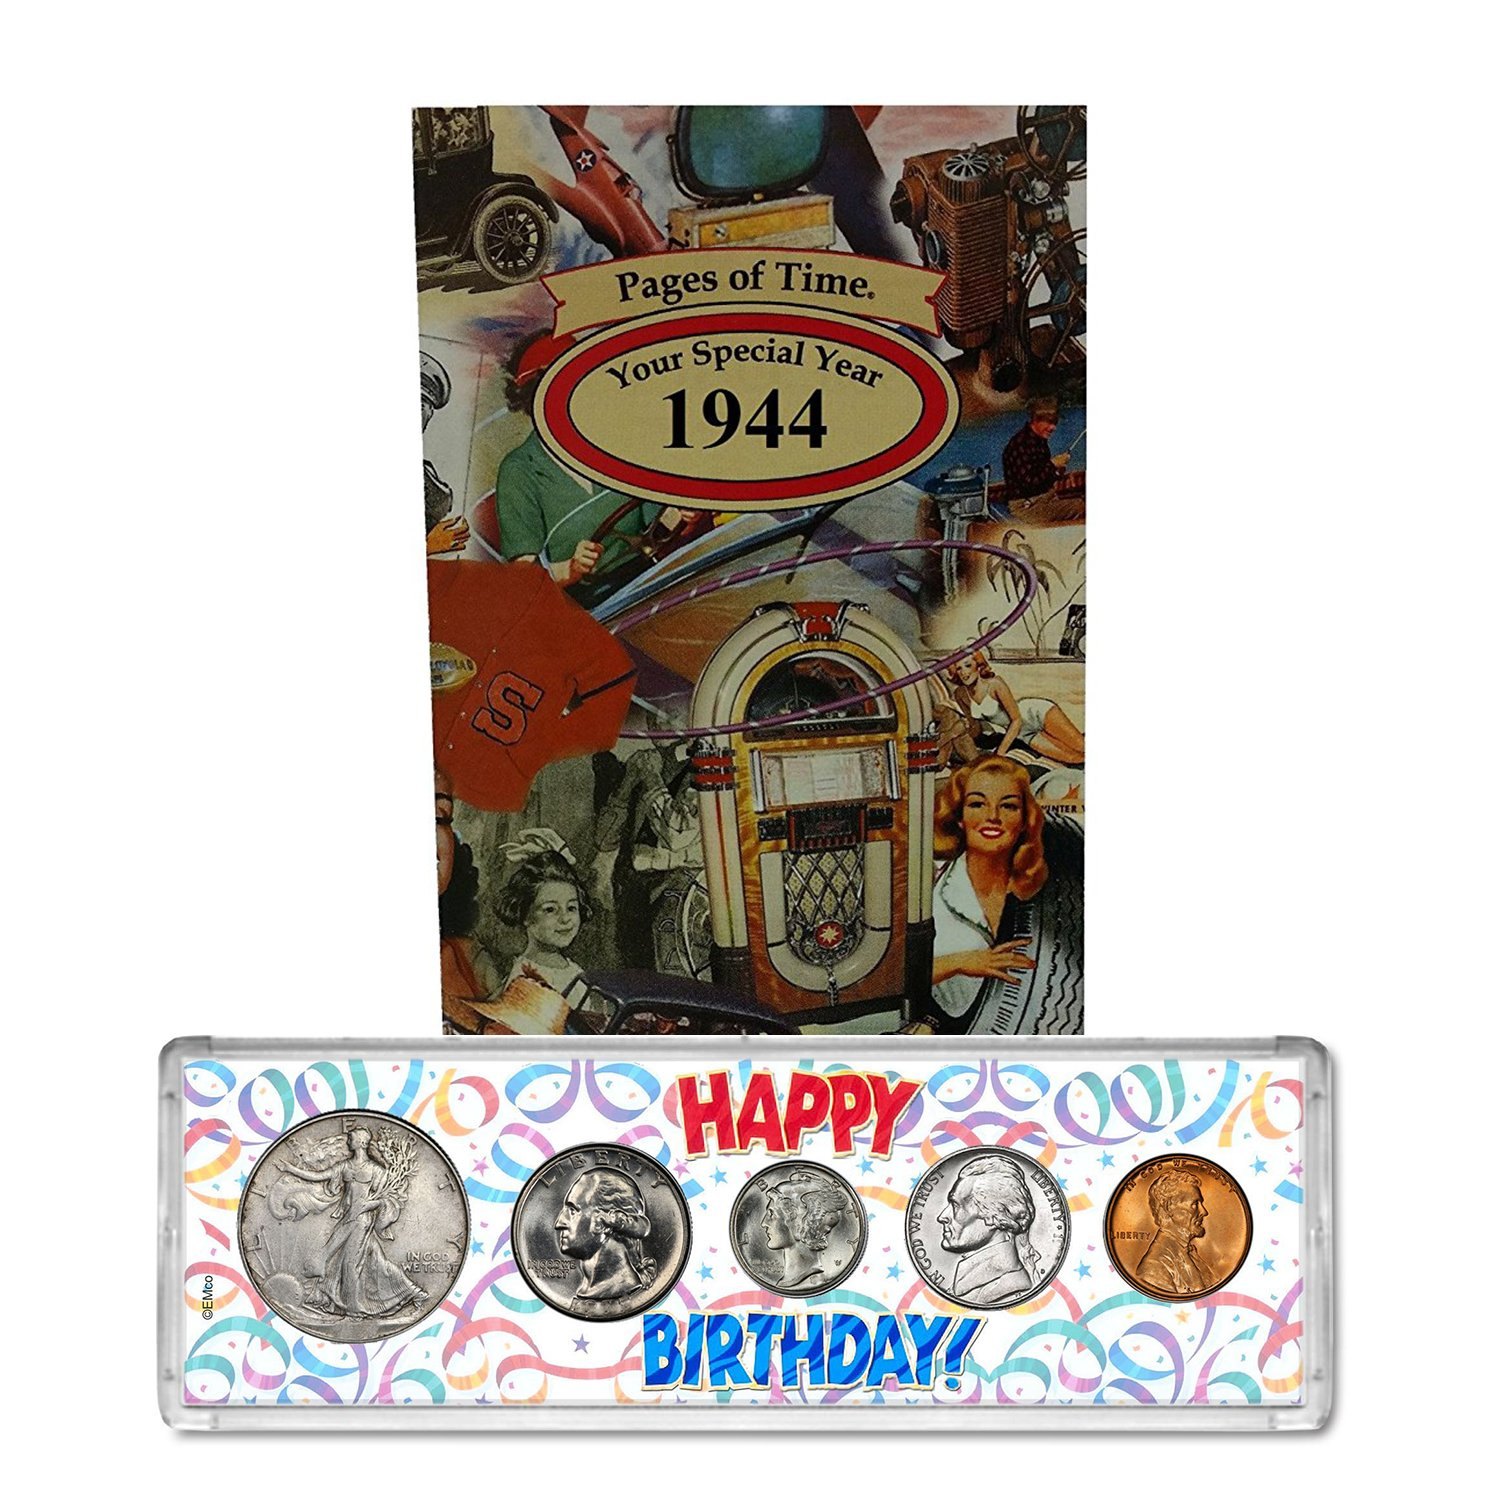 1944 Year Coin Set and Greeting Card : 74th Birthday - Happy Birthday